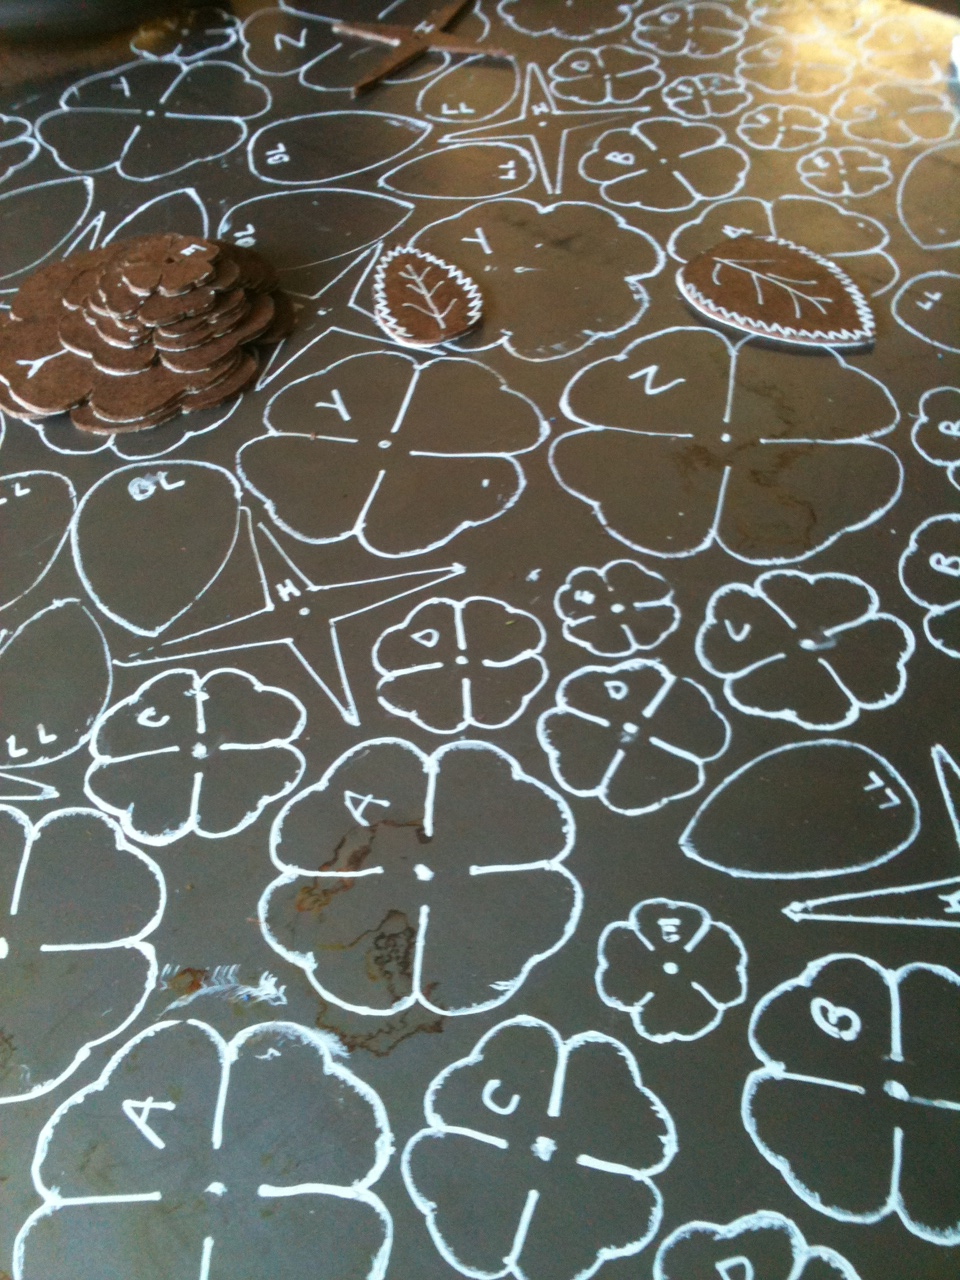 Tracing the roses out of sheet metal